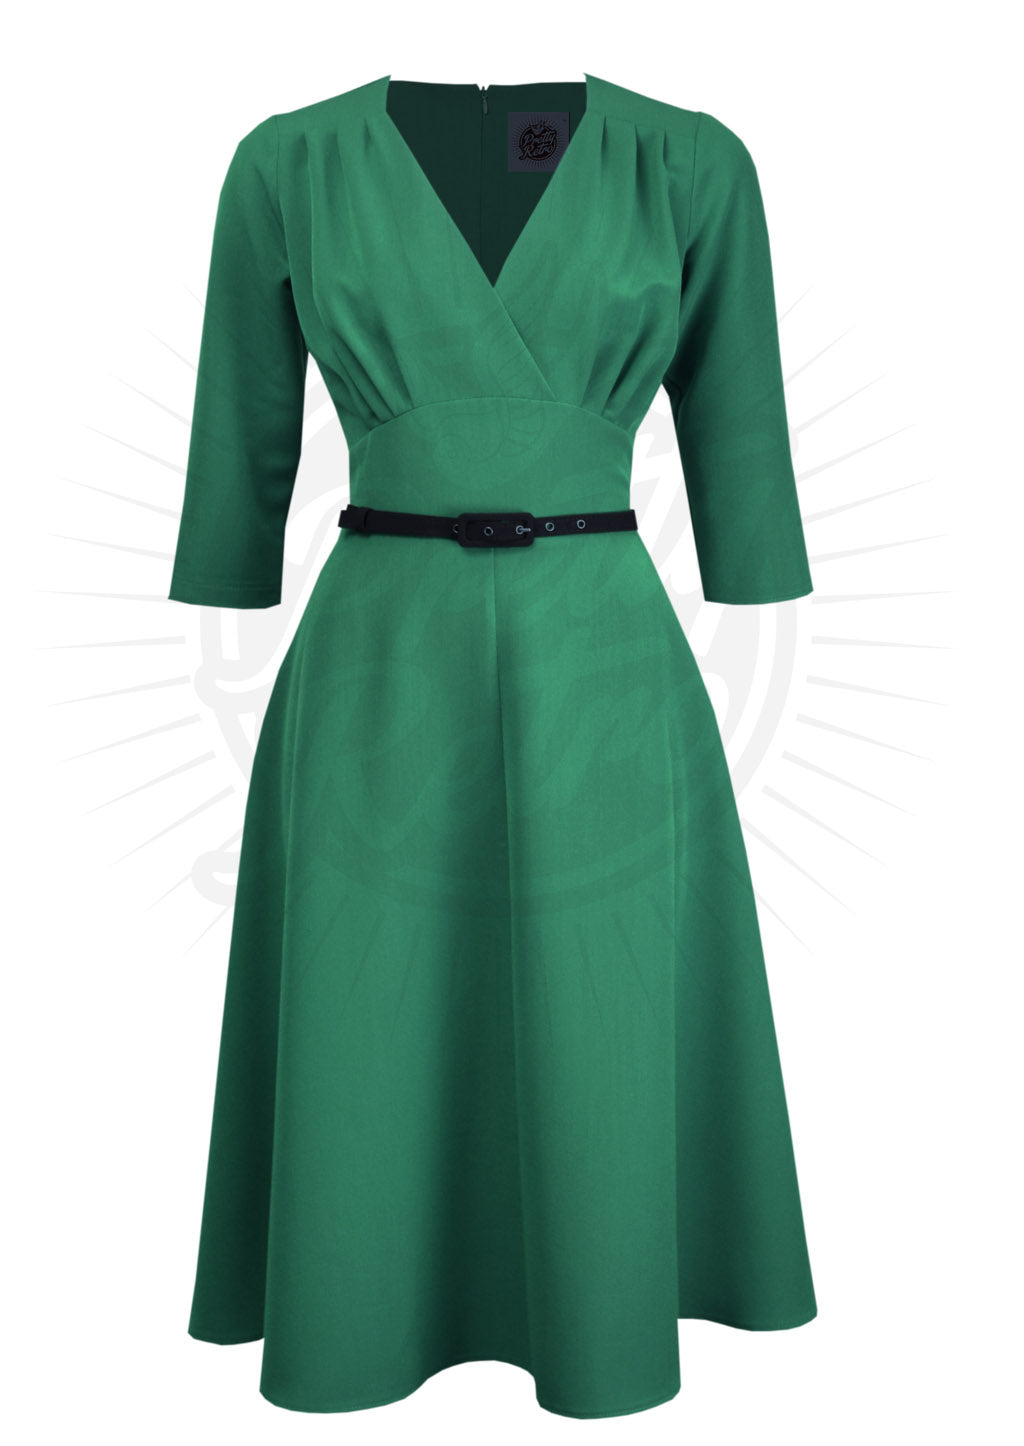 Emerald Green Classic 1940's Style Dress